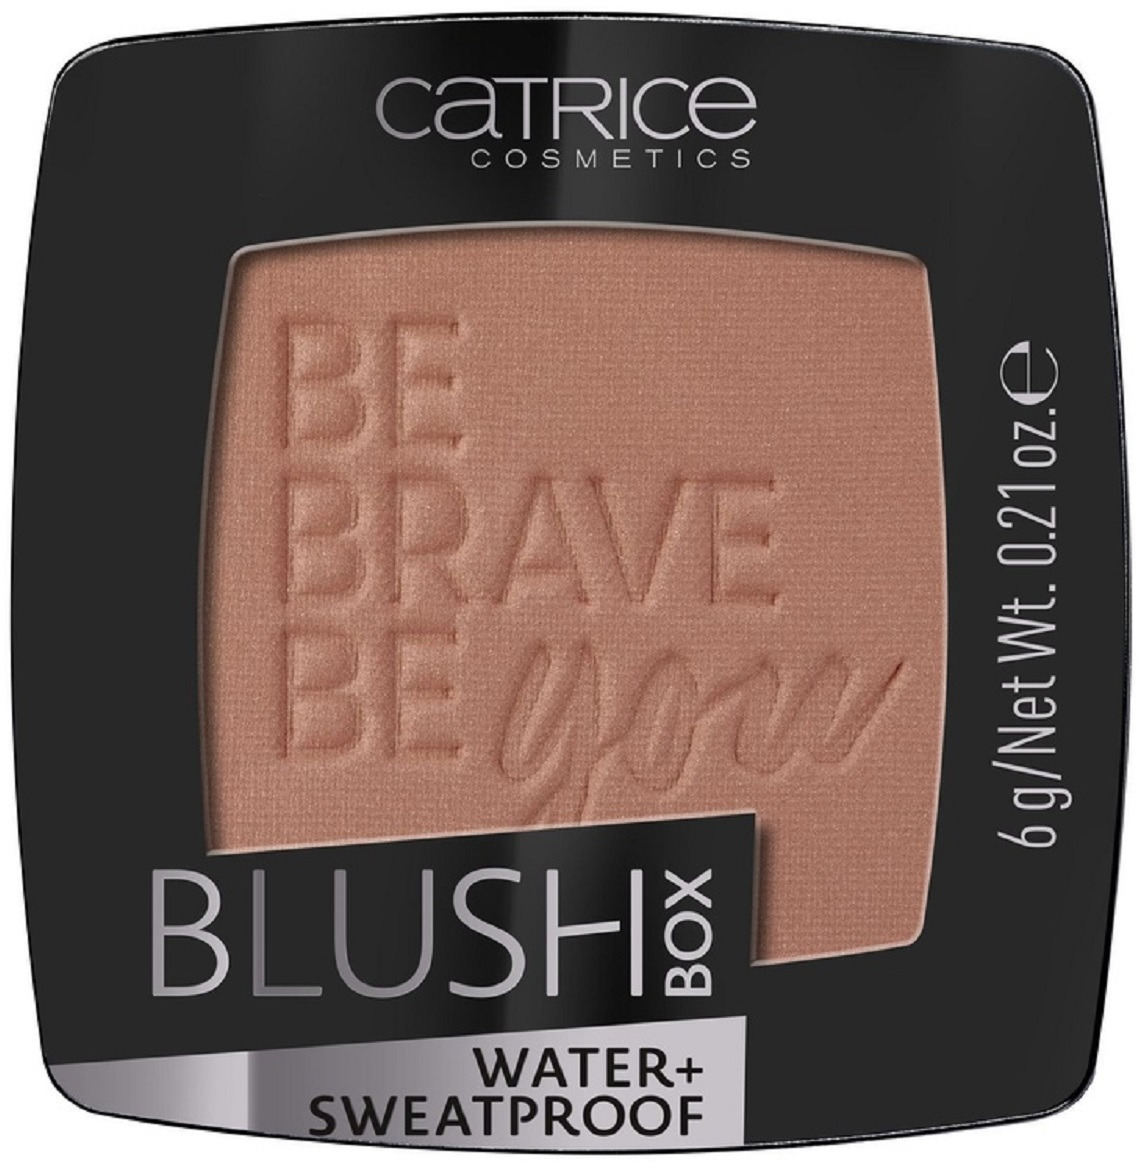 Румяна Catrice Blush Box, оттенок 060 Bronze,  г